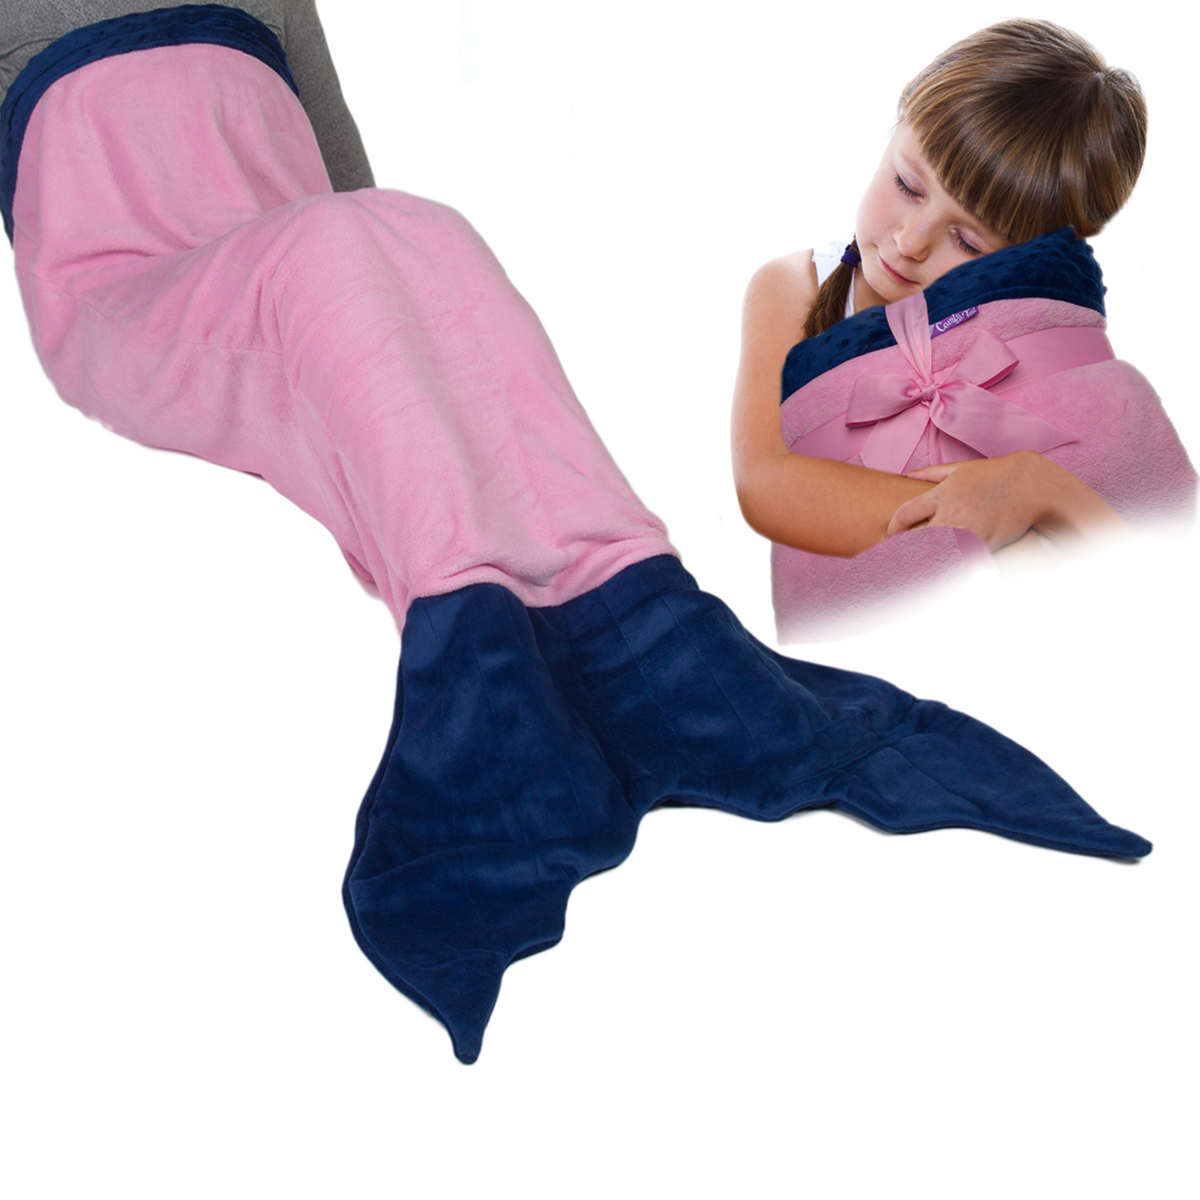 Original Comfy Tail Mermaid Tail Blanket Throw Plush Fleece Sleeping Bag for Kids and Adults by